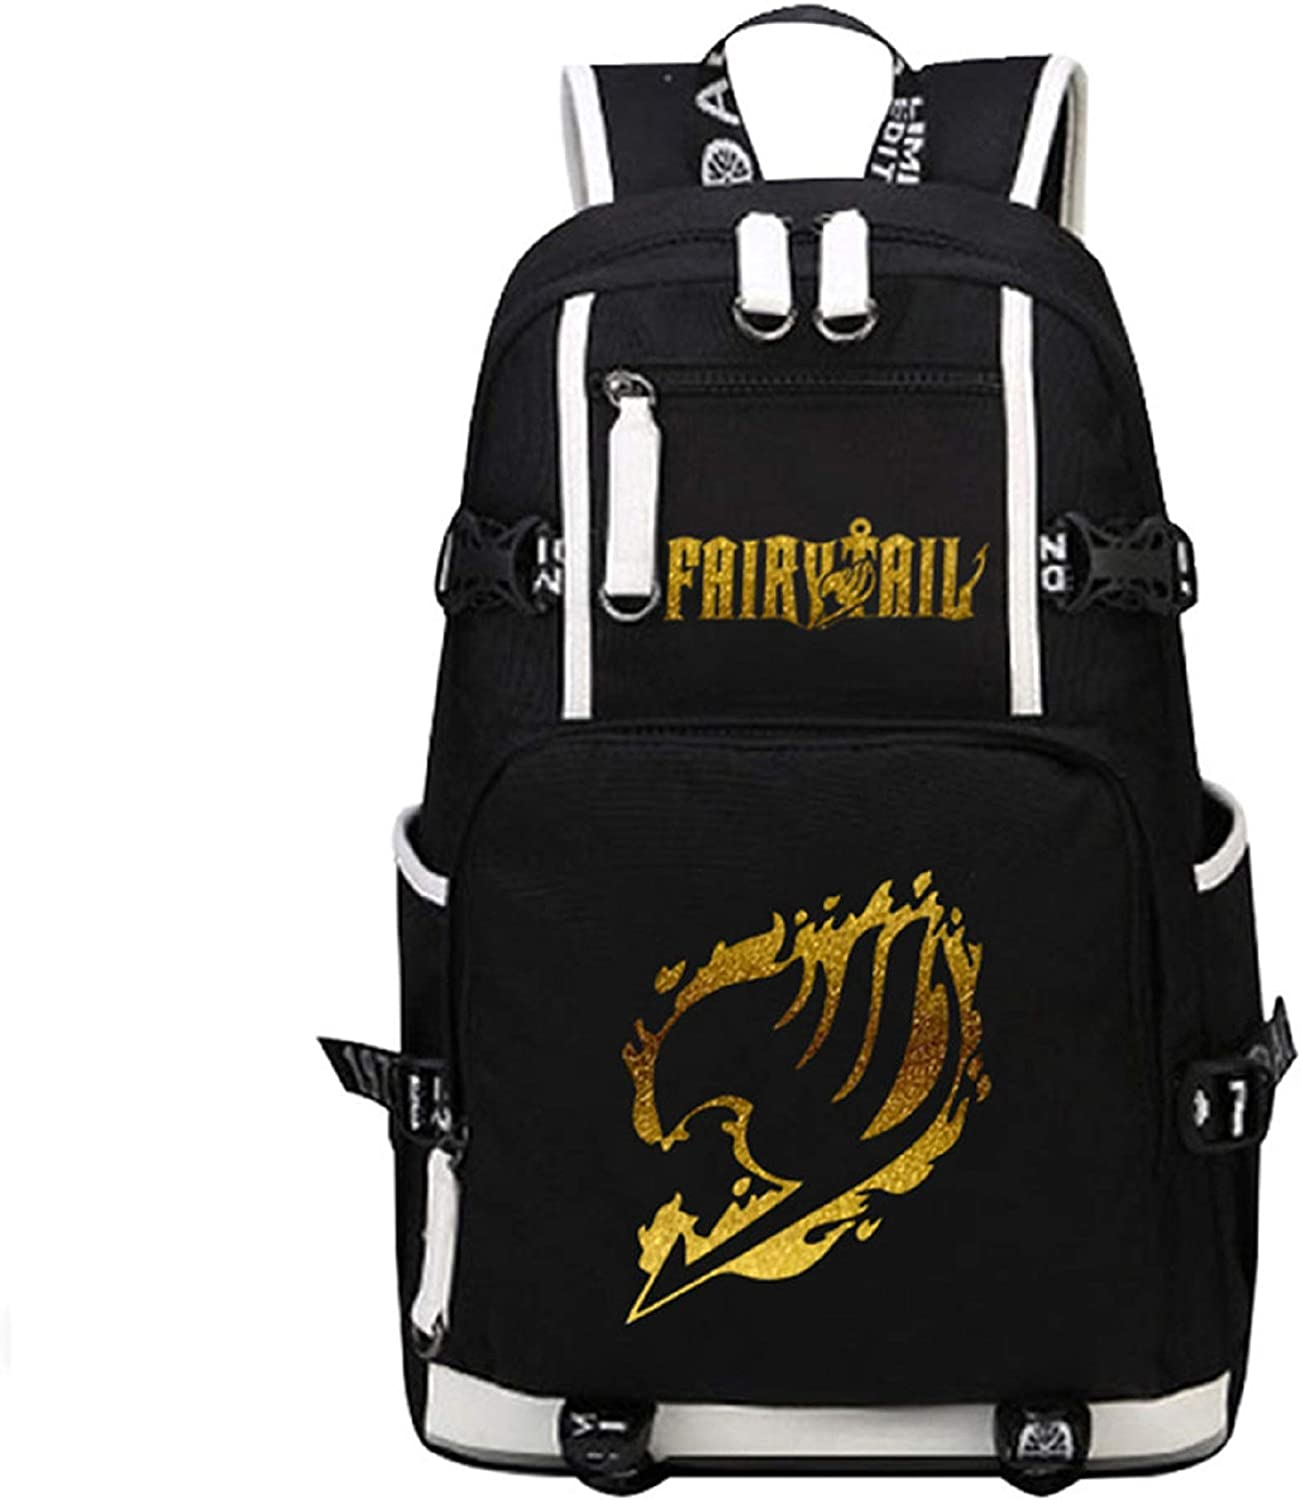 YOYOSHome Luminous Anime Fairy Tail Cosplay Daypack Bookbag Laptop Bag Backpack School Bag (3)